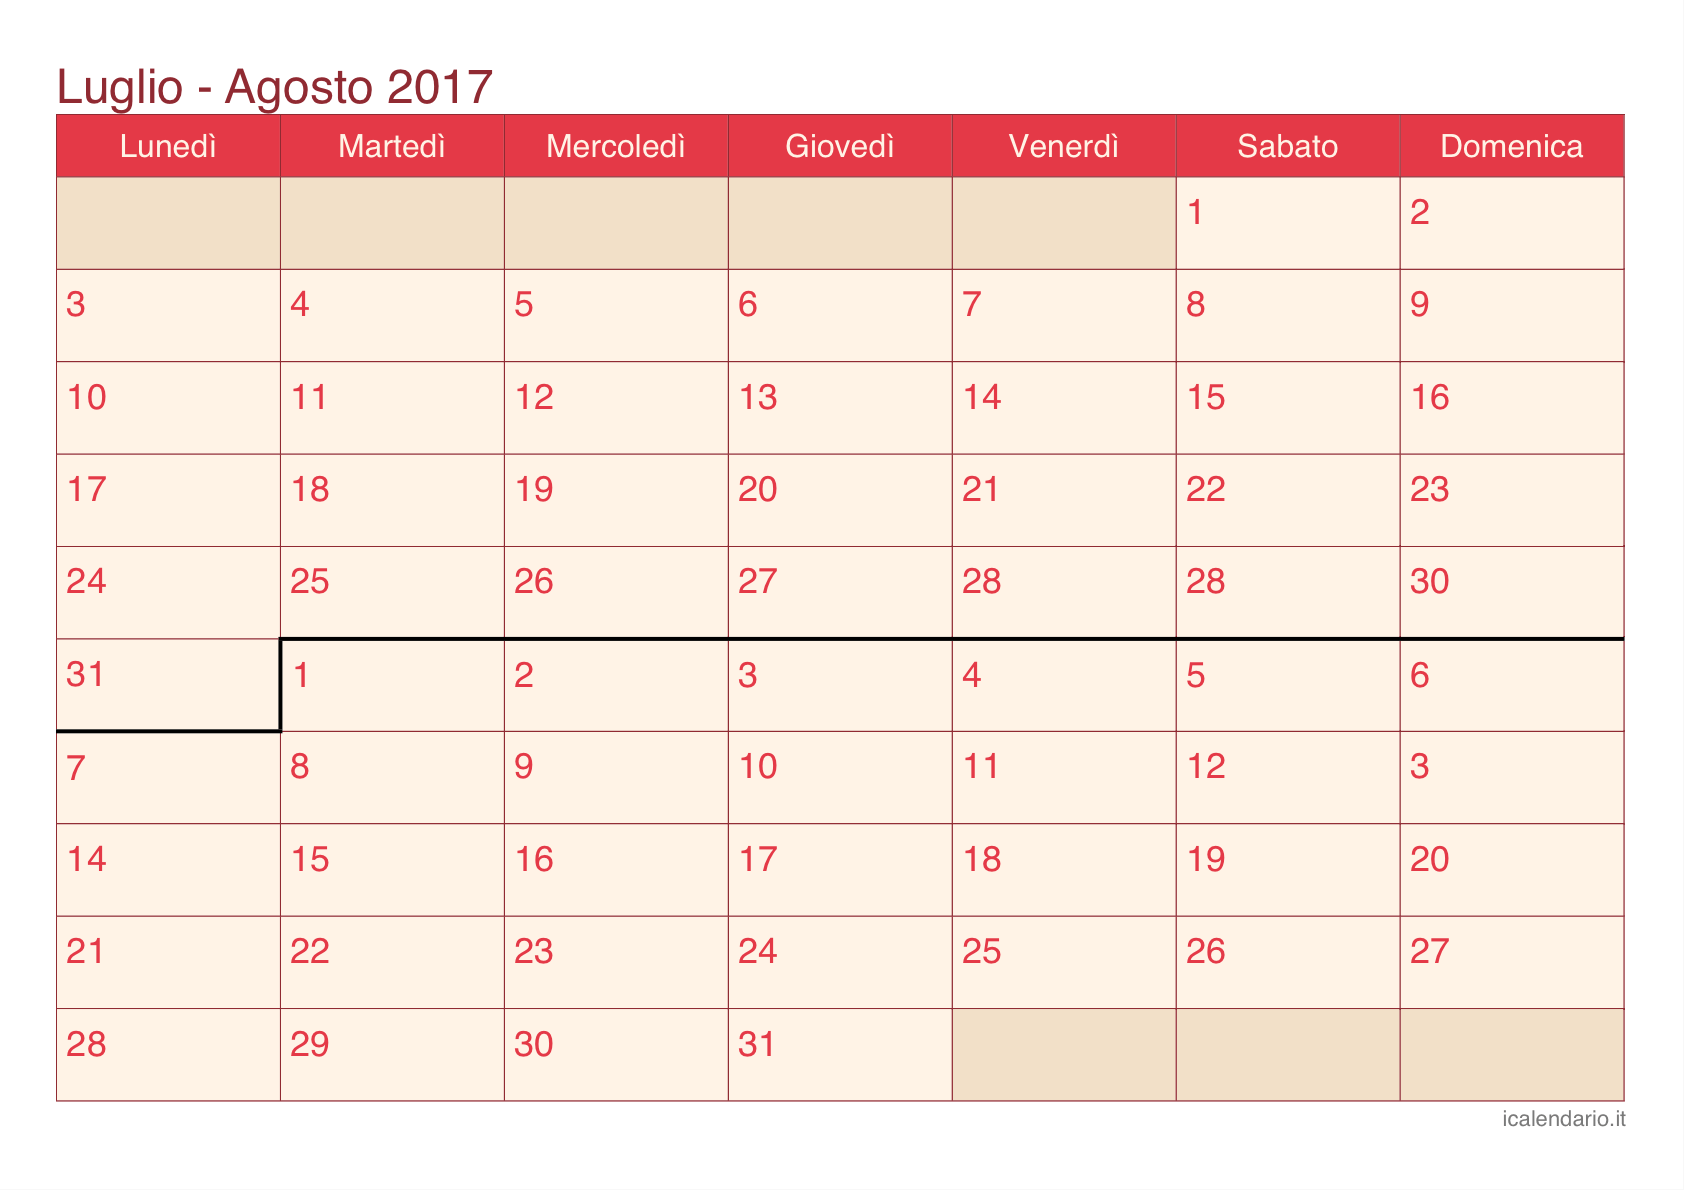 Calendario Mes 2017 Excel Calendario Luglio Agosto 2017 Da Stampare Icalendario It